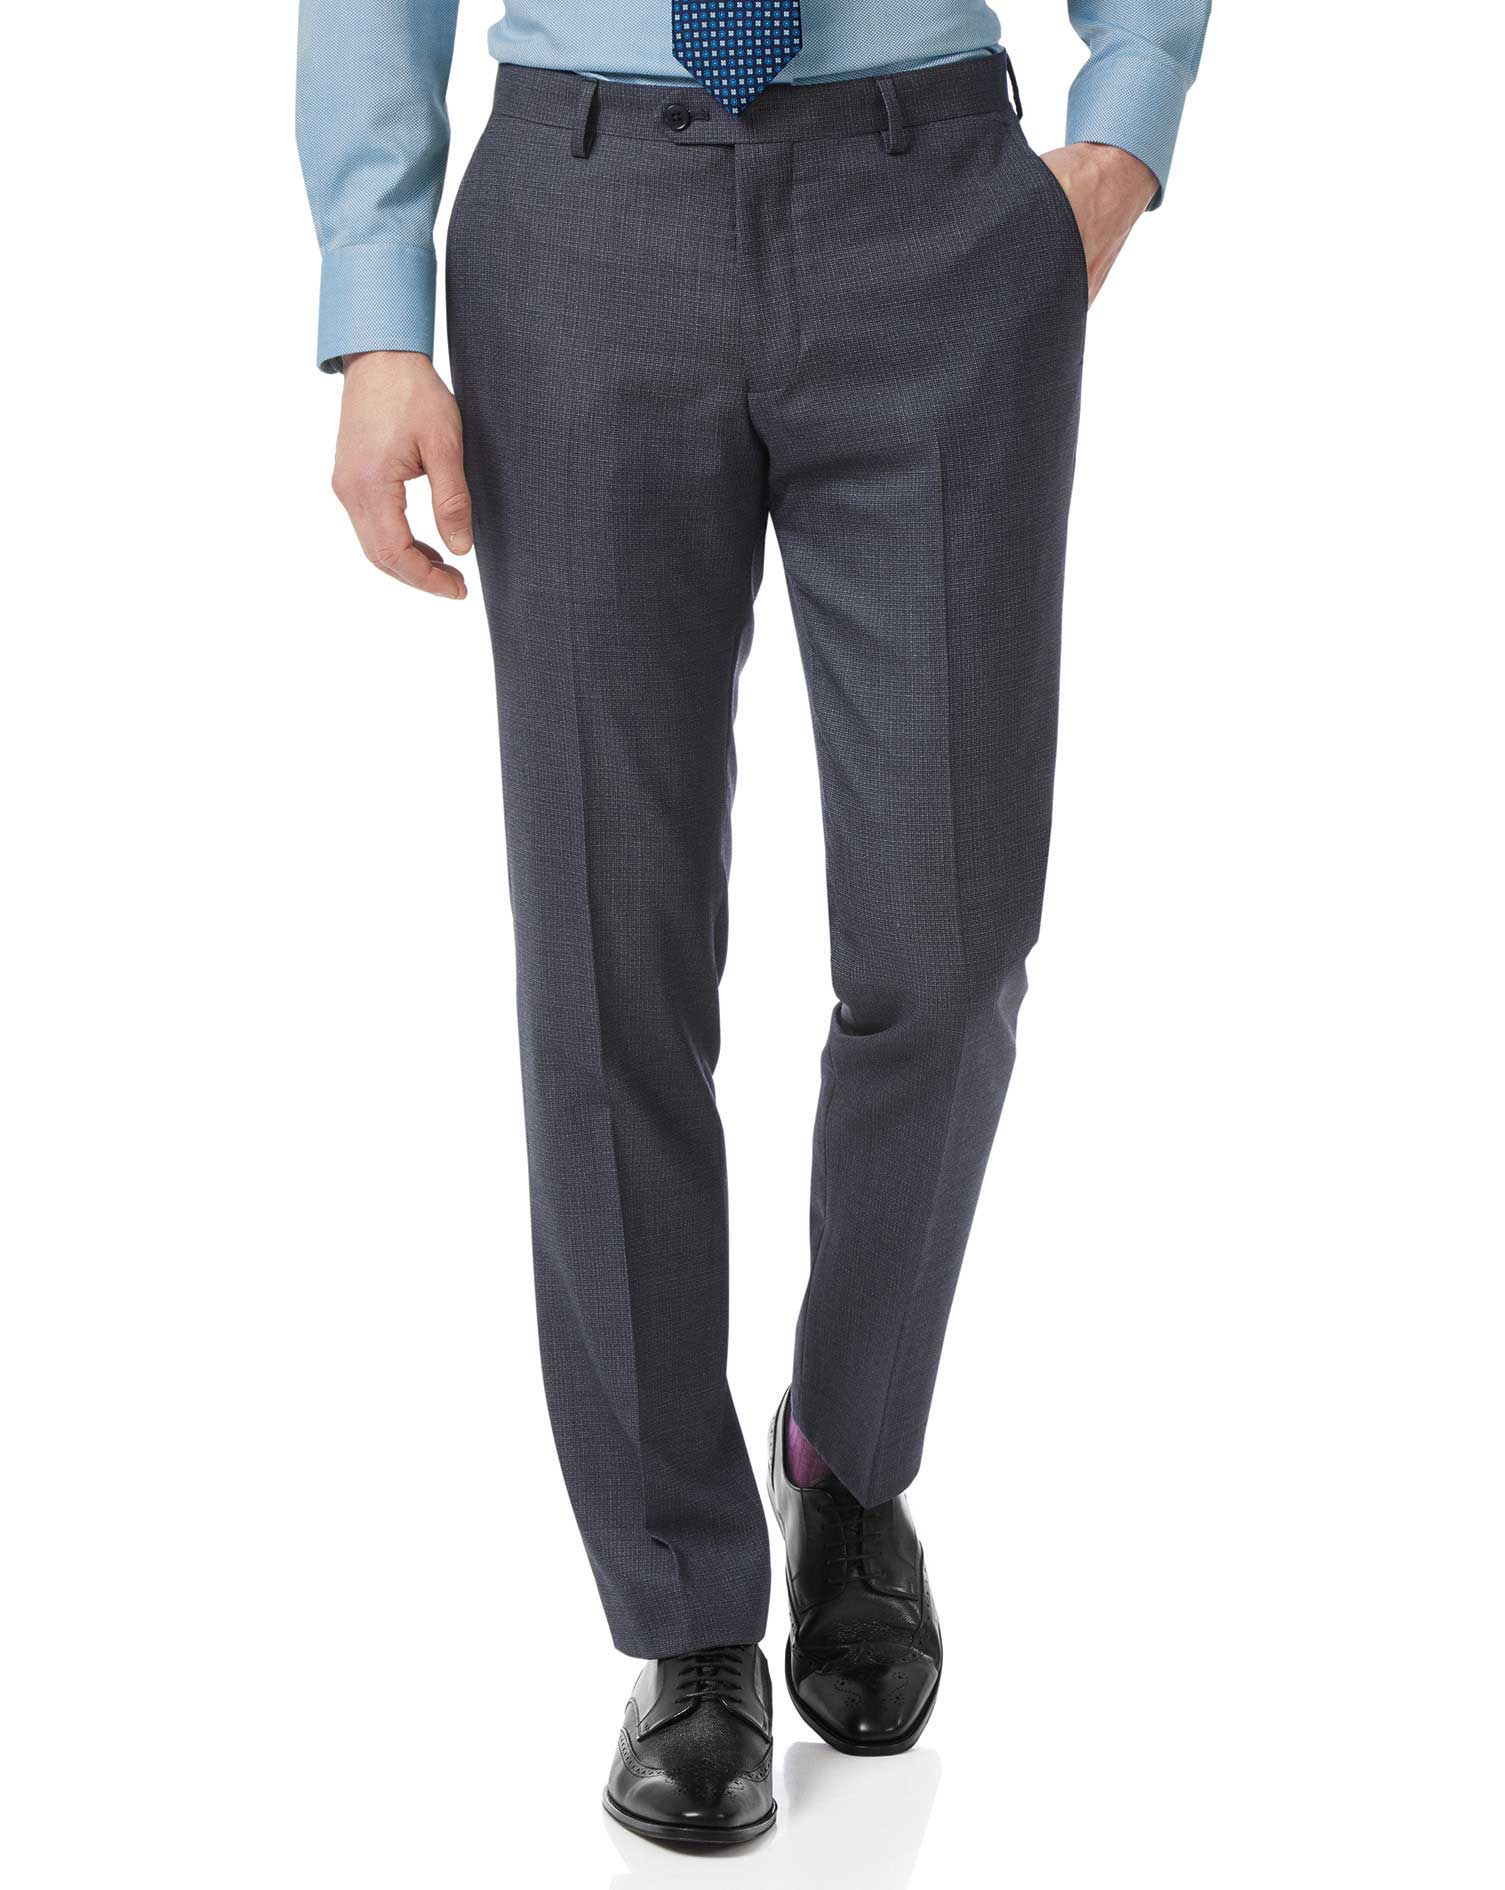 Airforce Blue Slim Jaspe Business Suit Trousers Size W32 L38 by Charles Tyrwhitt